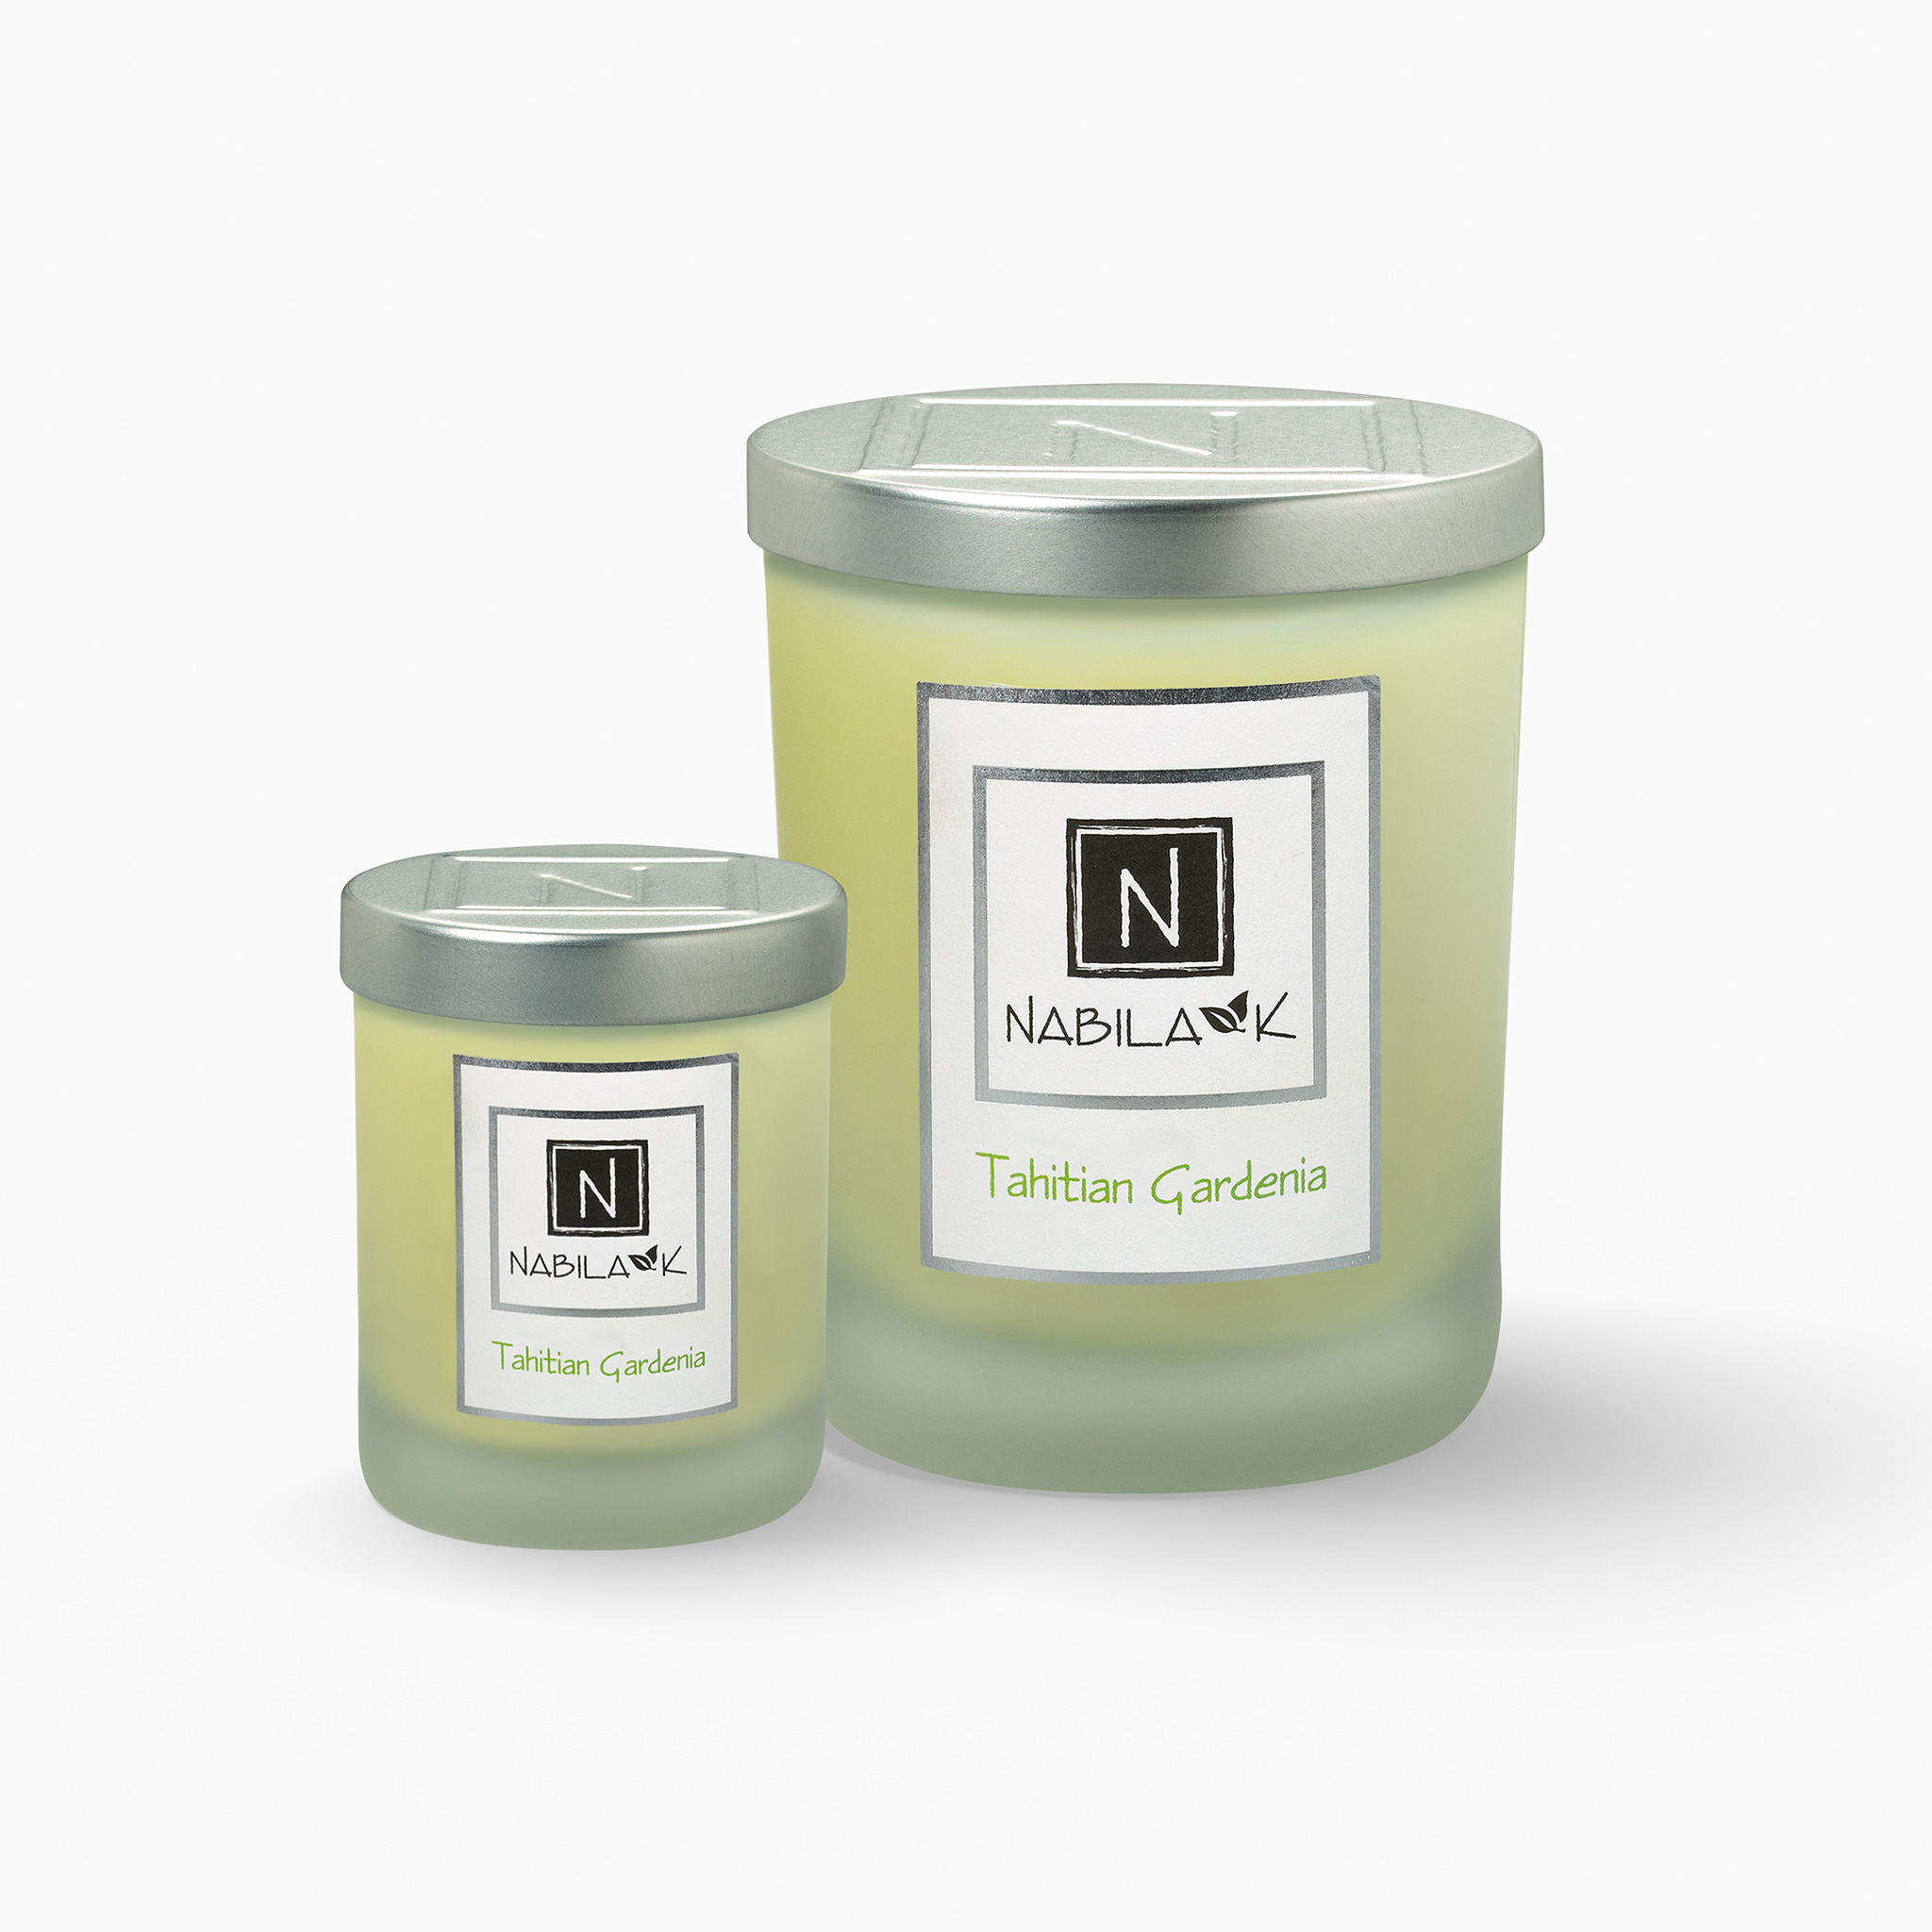 1 Large and 1 Small Version of Nabila K's Tahitian Gardenia Candle